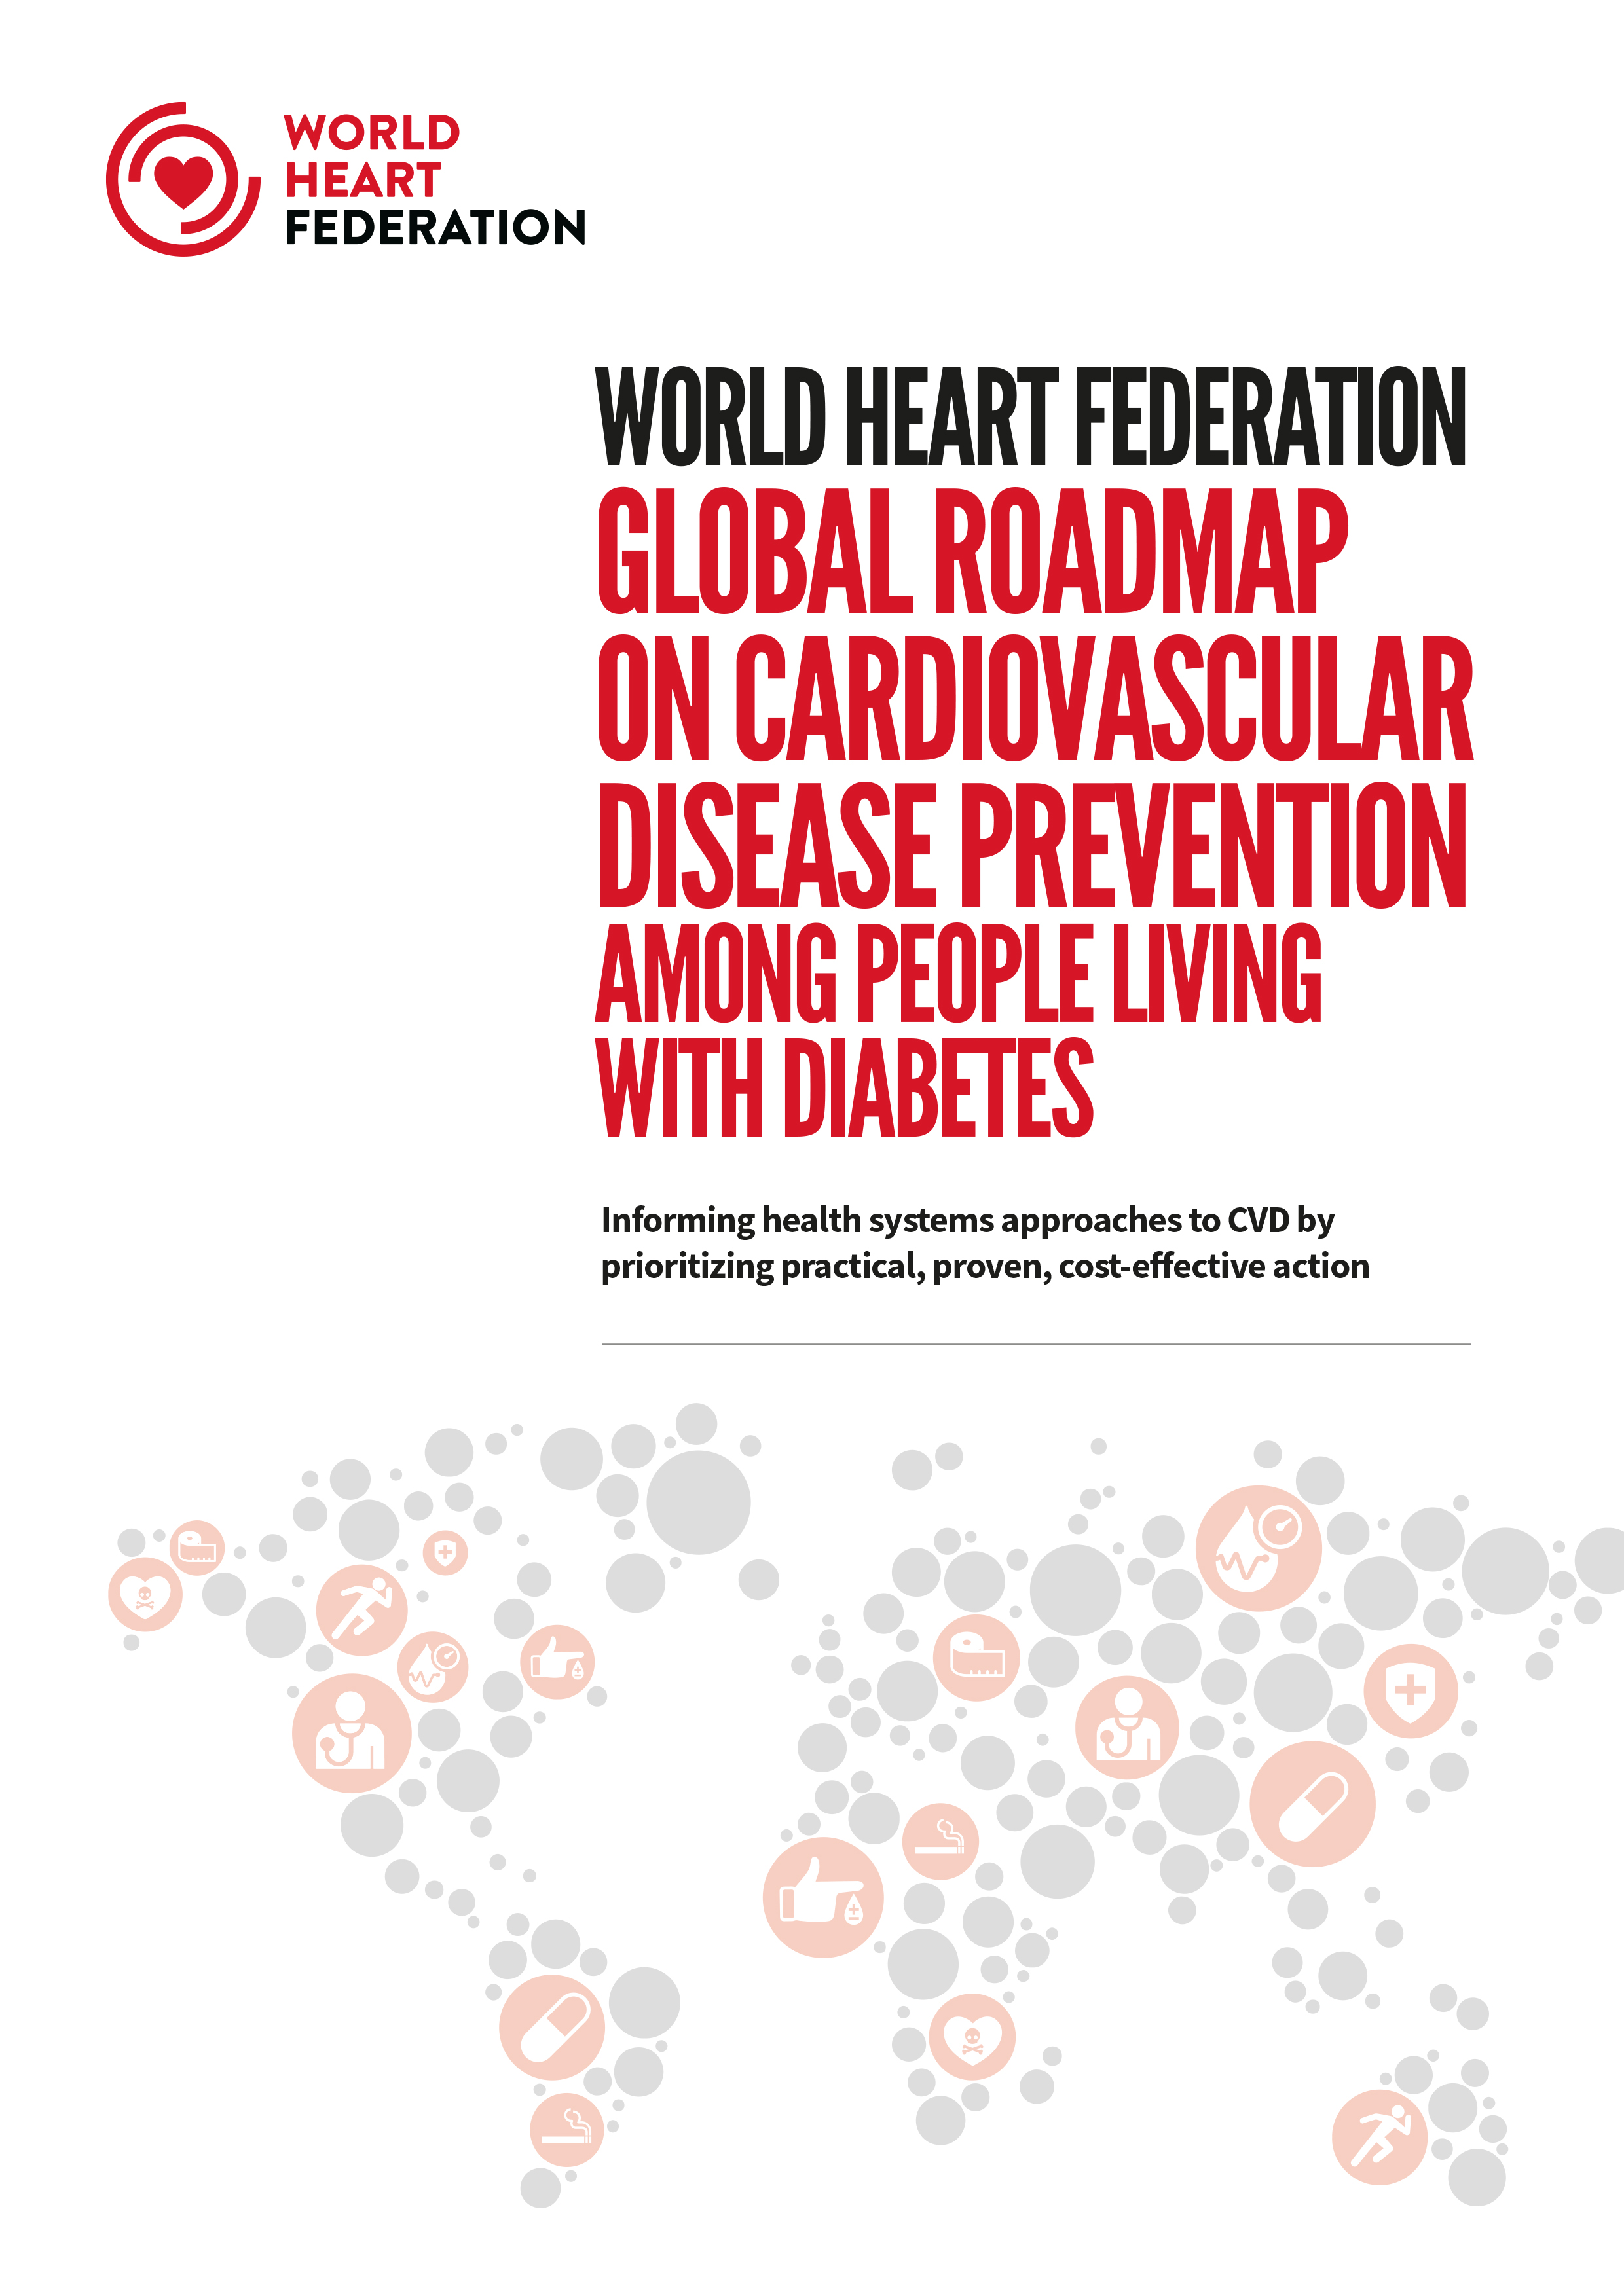 WHF launches new Global Roadmap on the prevention of CVD